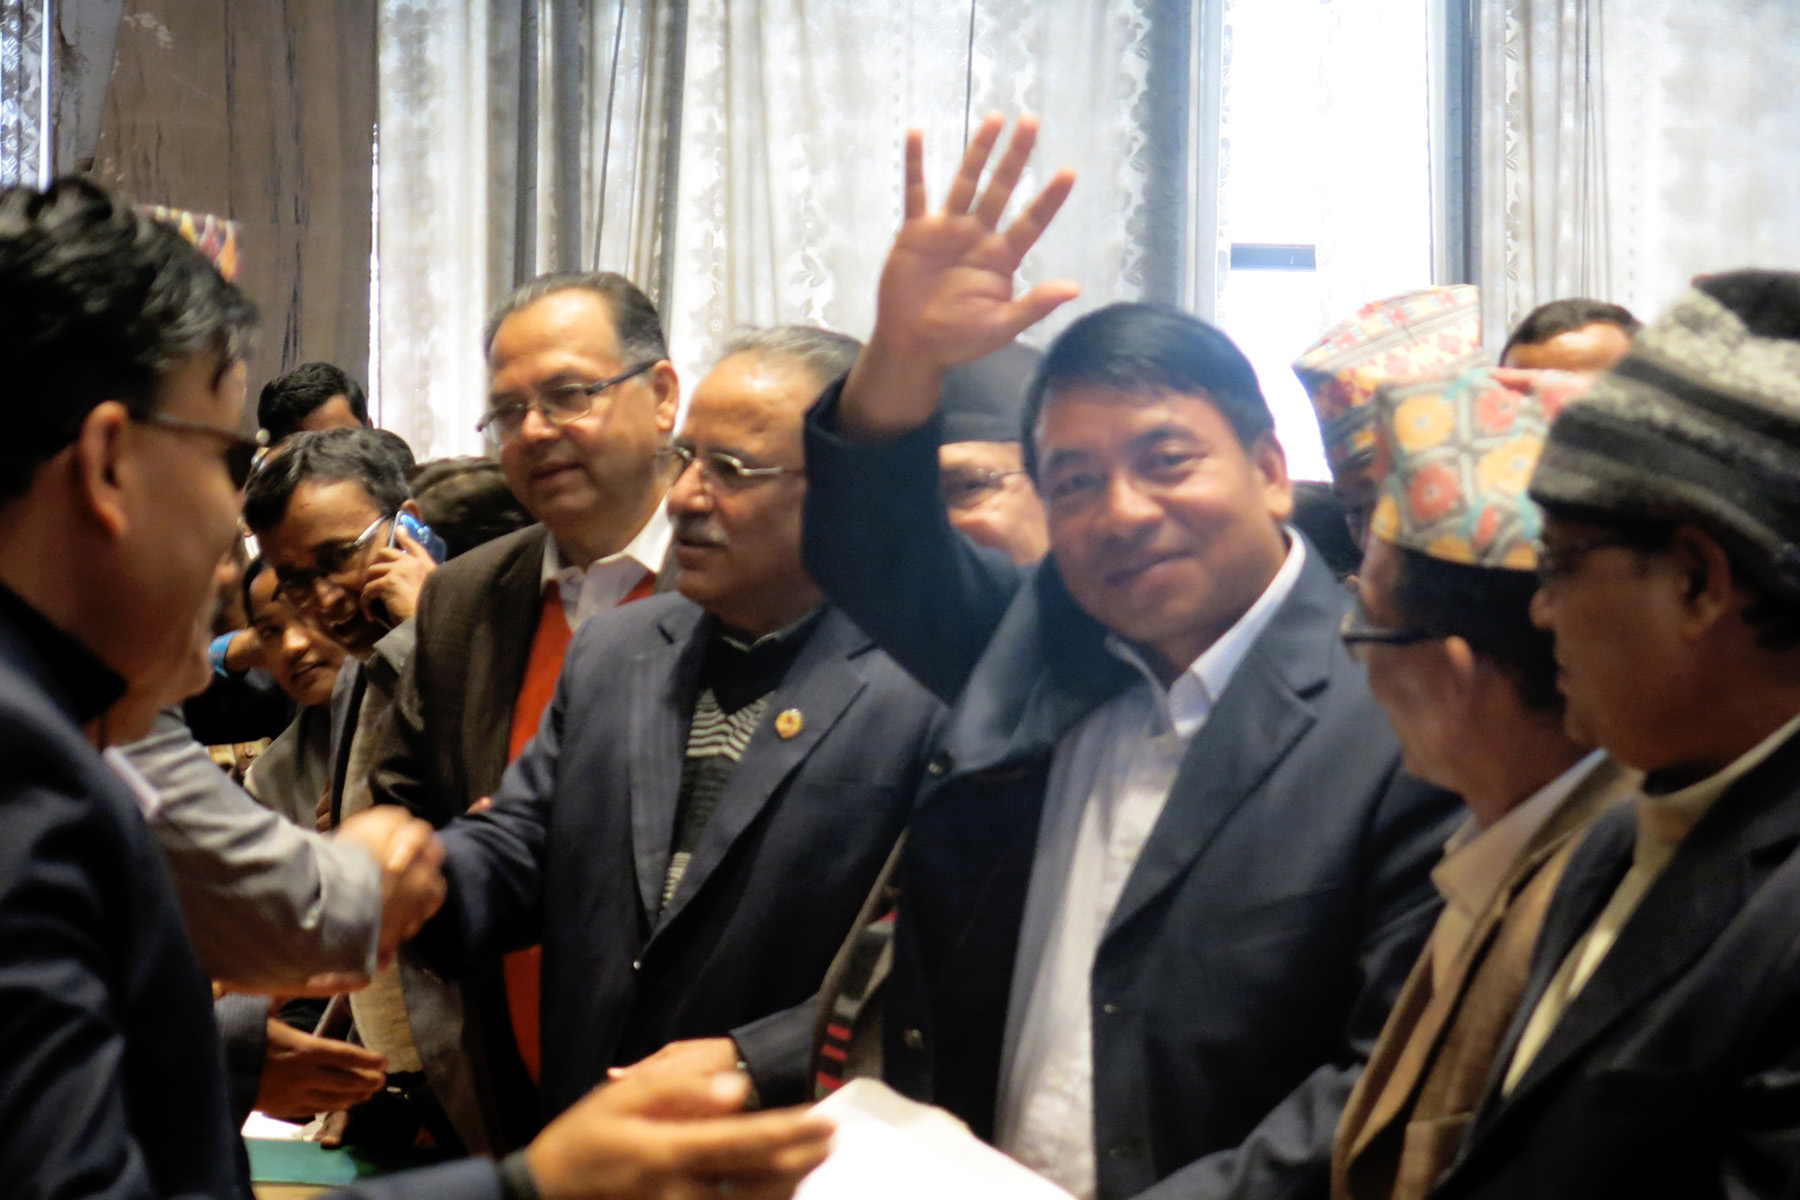 UCPN-Moaist leader Nanda Kishor Pun waves to media persons after filing his candidacy for the election of Vice-President at the Legislature-Parliament building in New Baneshwor on Friday, October 30, 2015. Photo: RSS